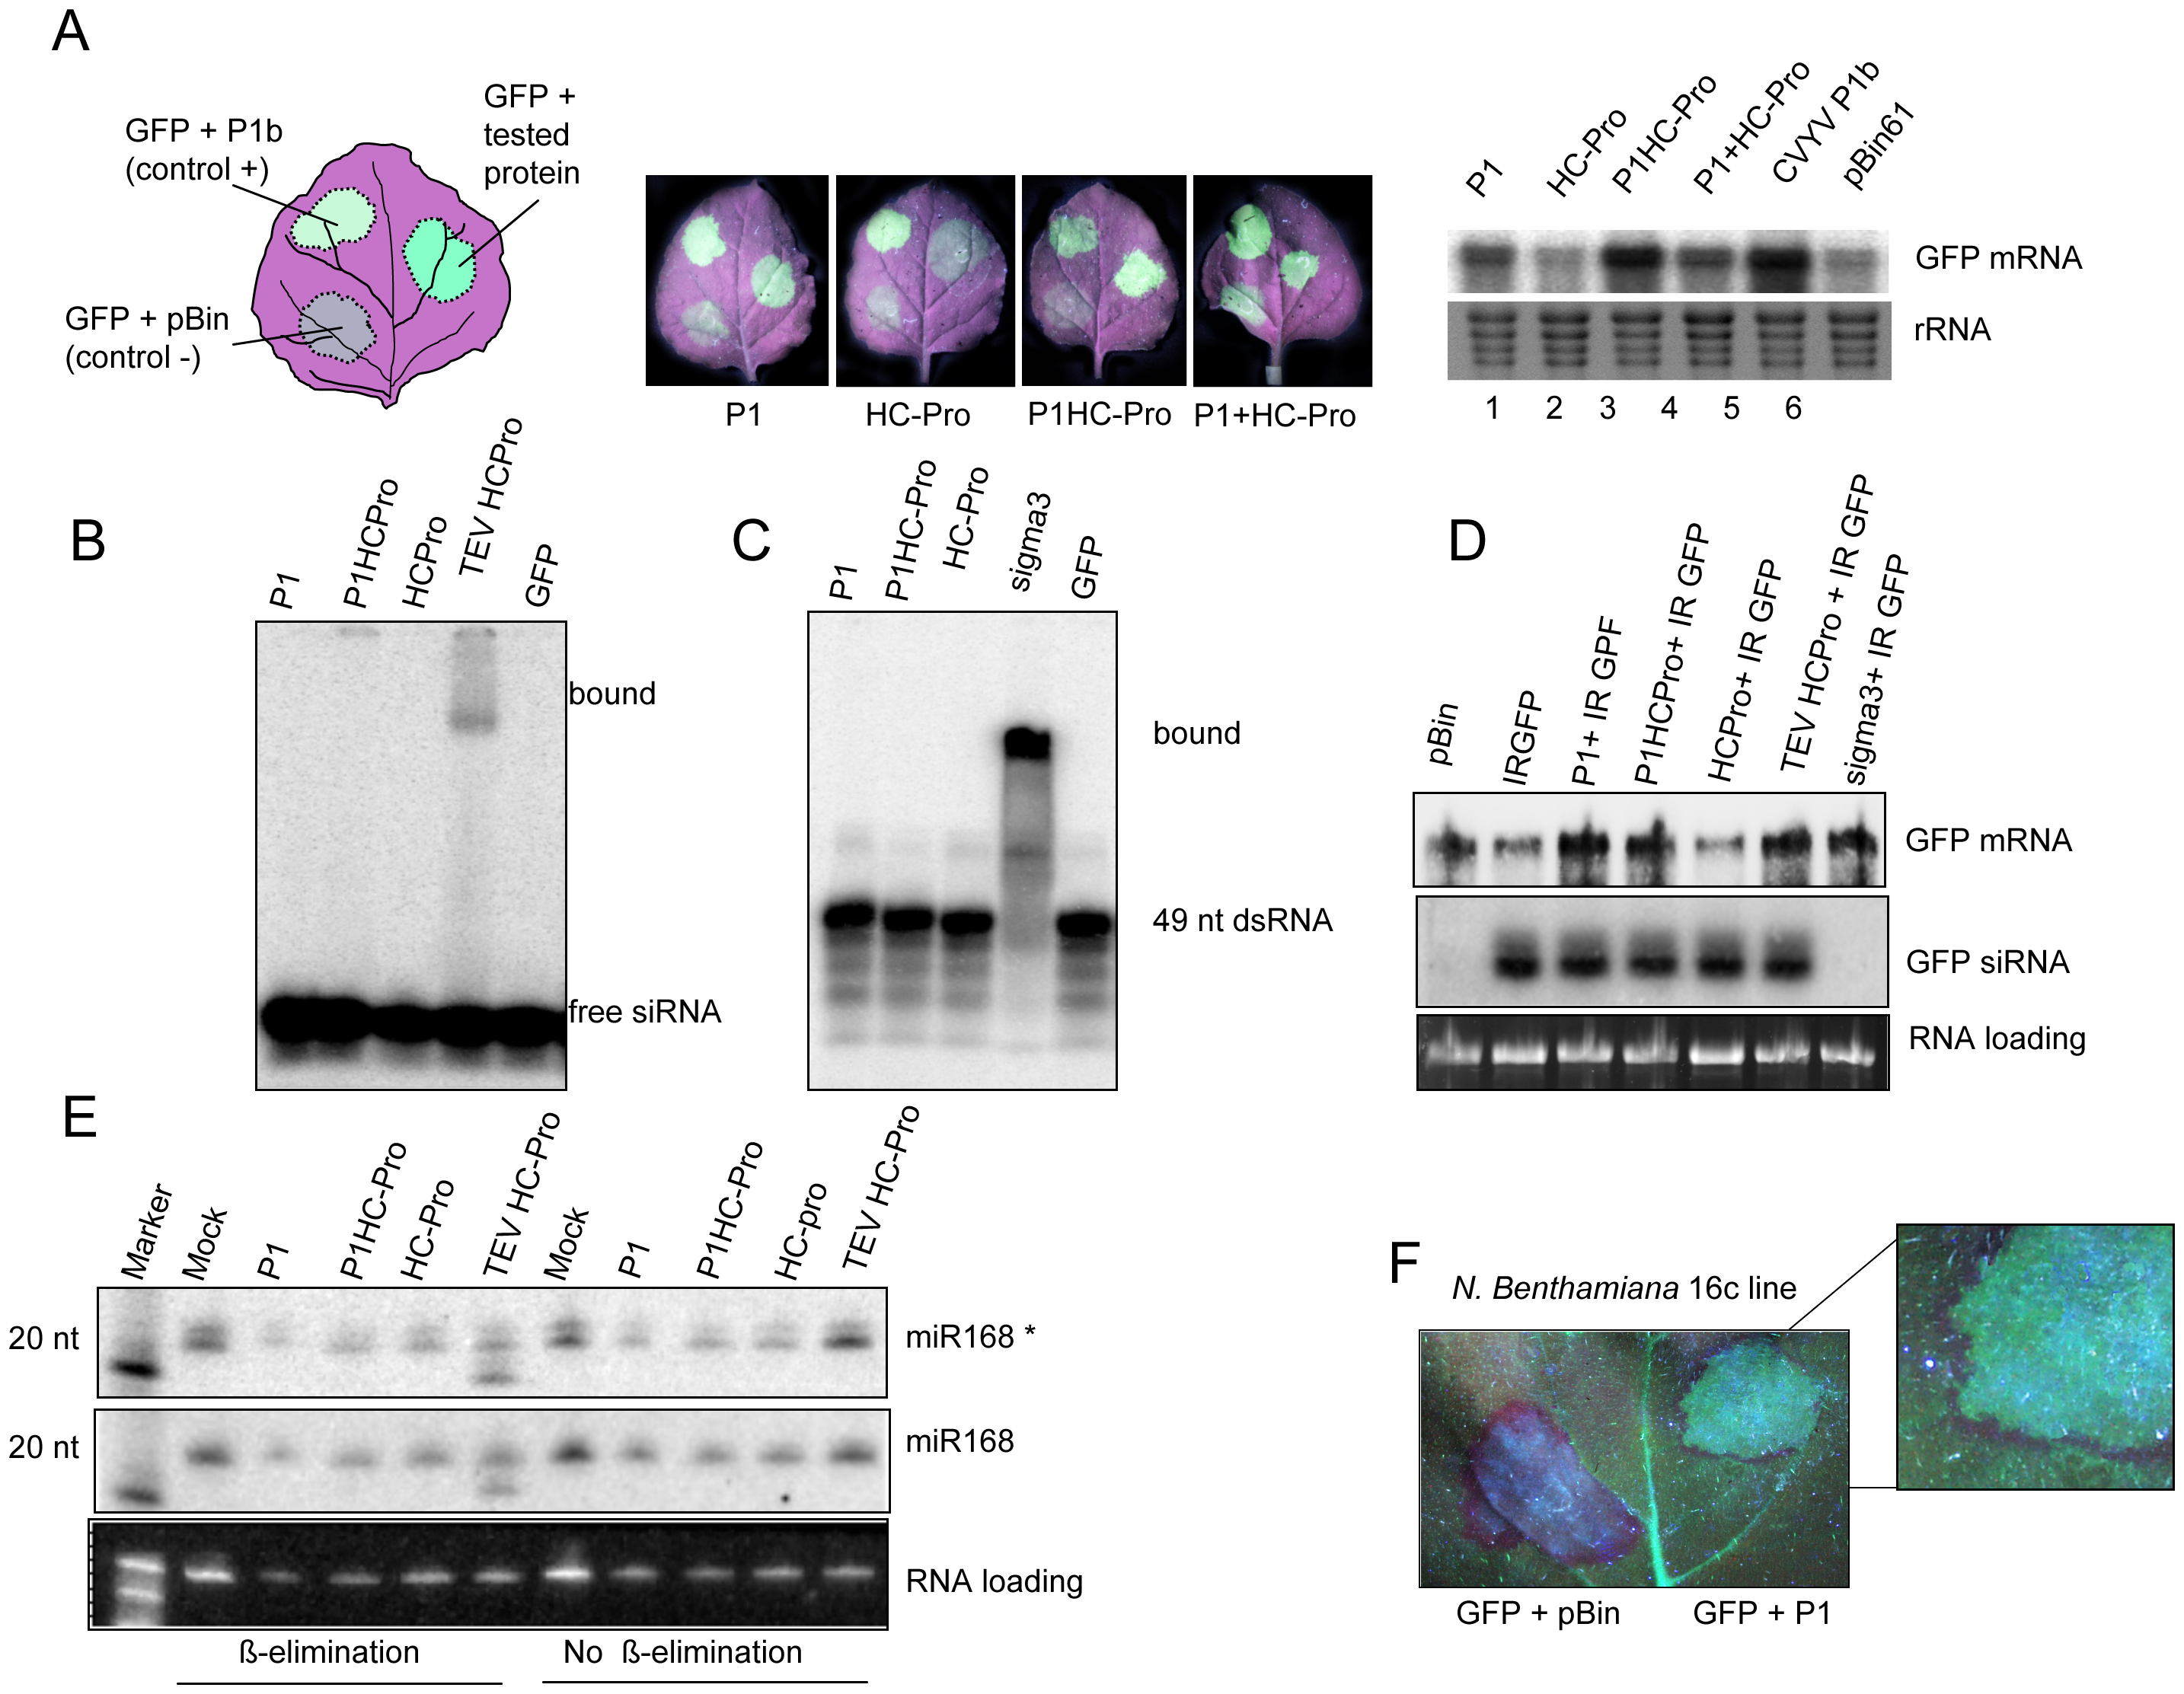 SPMMV P1 suppresses RNA silencing by mechanisms that diverge from other viral suppressors.